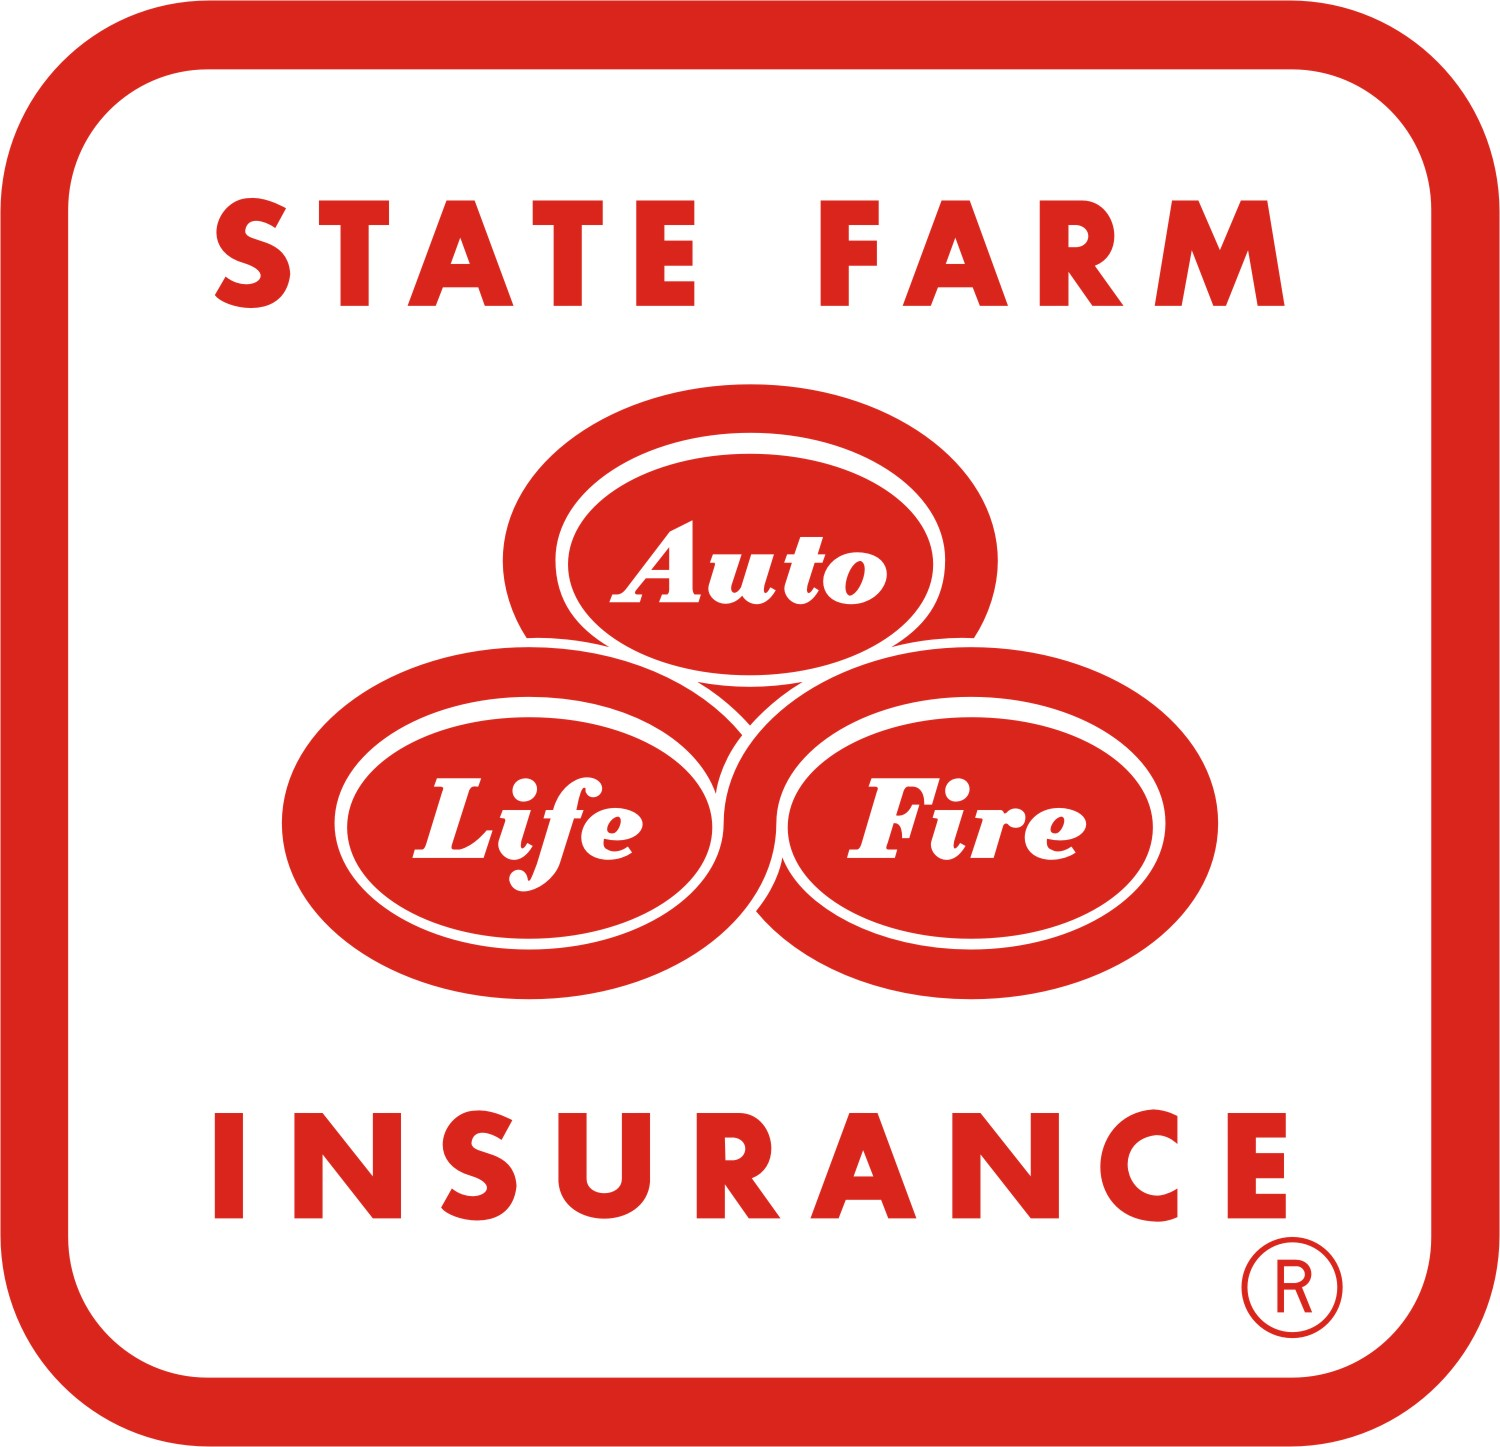 state farm was started in 1922 for farmers the founder